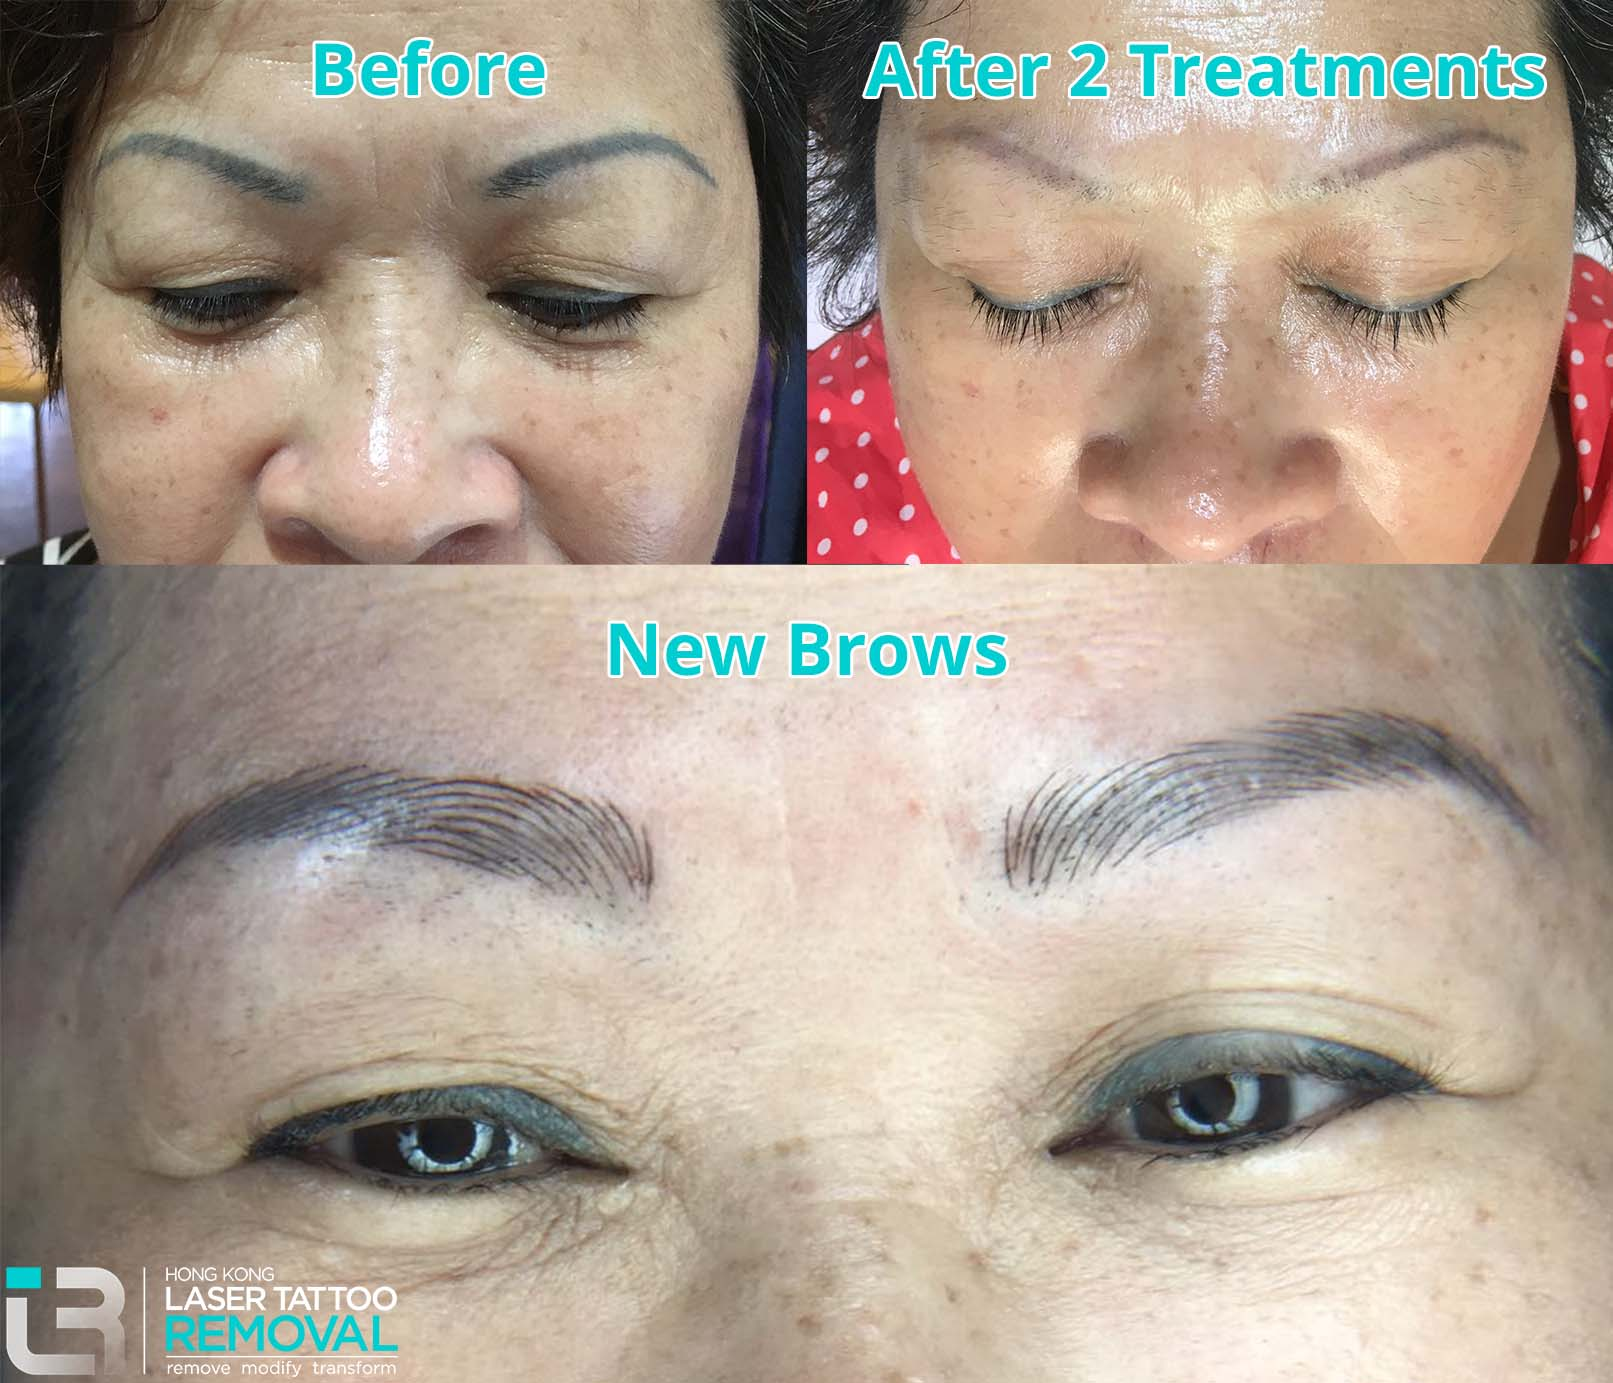 Before and New Brows